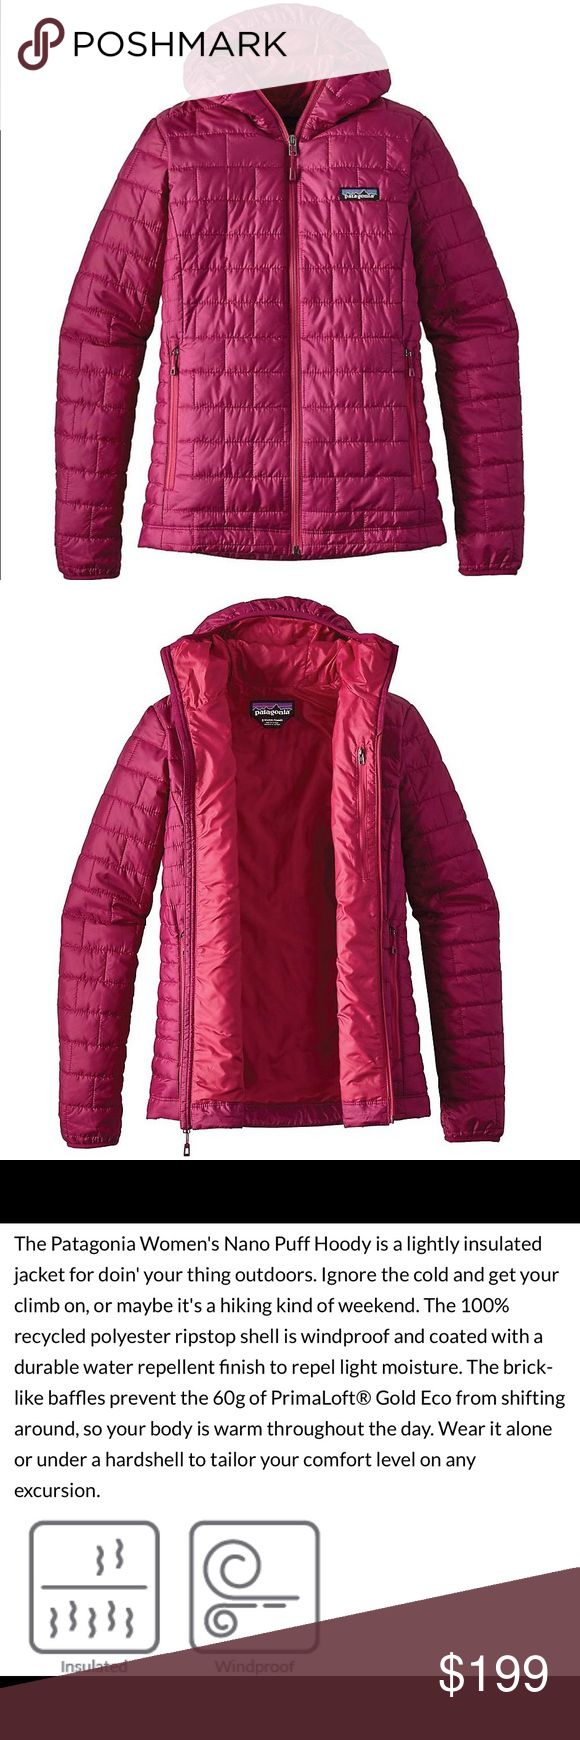 Patagonia Nano Puff Hoody Magenta Puffer Jacket Brand new with tags! Size XL. I don't even know how to say how amazing this jacket is! It's lightweight YET so so warm. I guess that's why it retails for so much. The reviews are so high on this jacket because it delivers! It is right on trend, it is super cute, and most definitely.. so incredibly warm. Please see the photos I have with all of the details and features. I am pricing mine lower than any other jacket like it's kind on the…